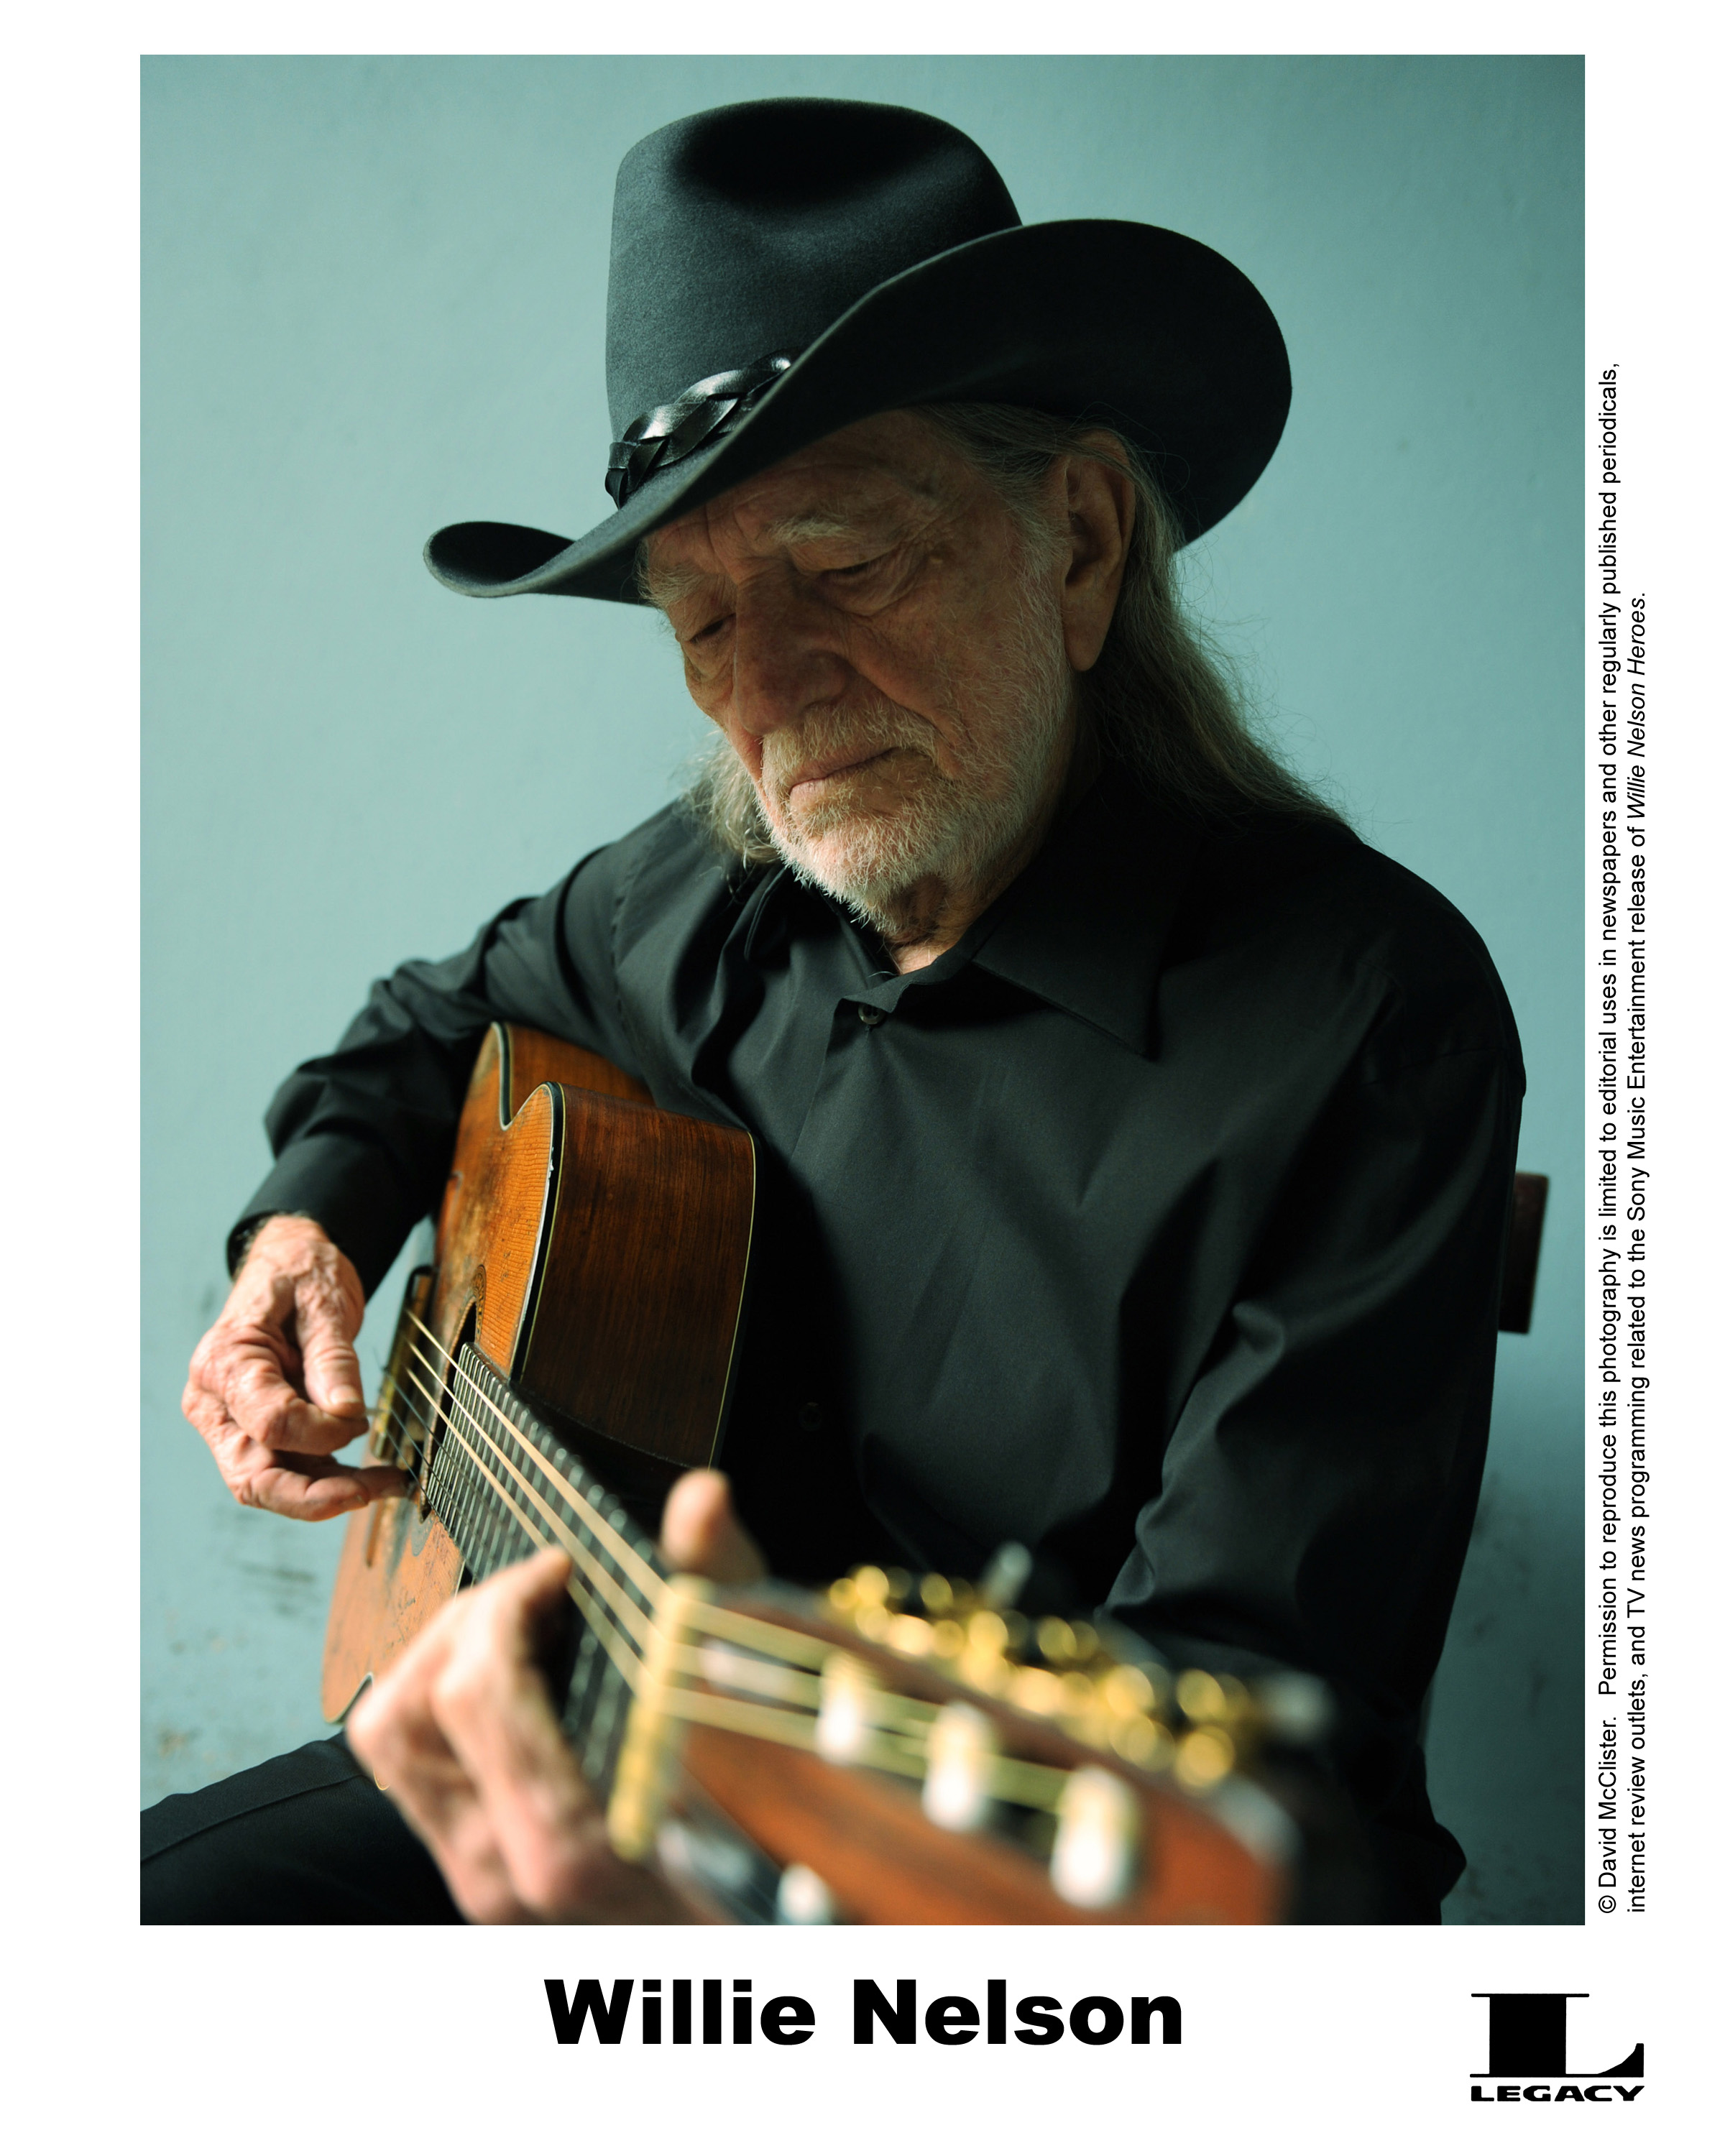 Outlaw country troubadour, Willie Nelson